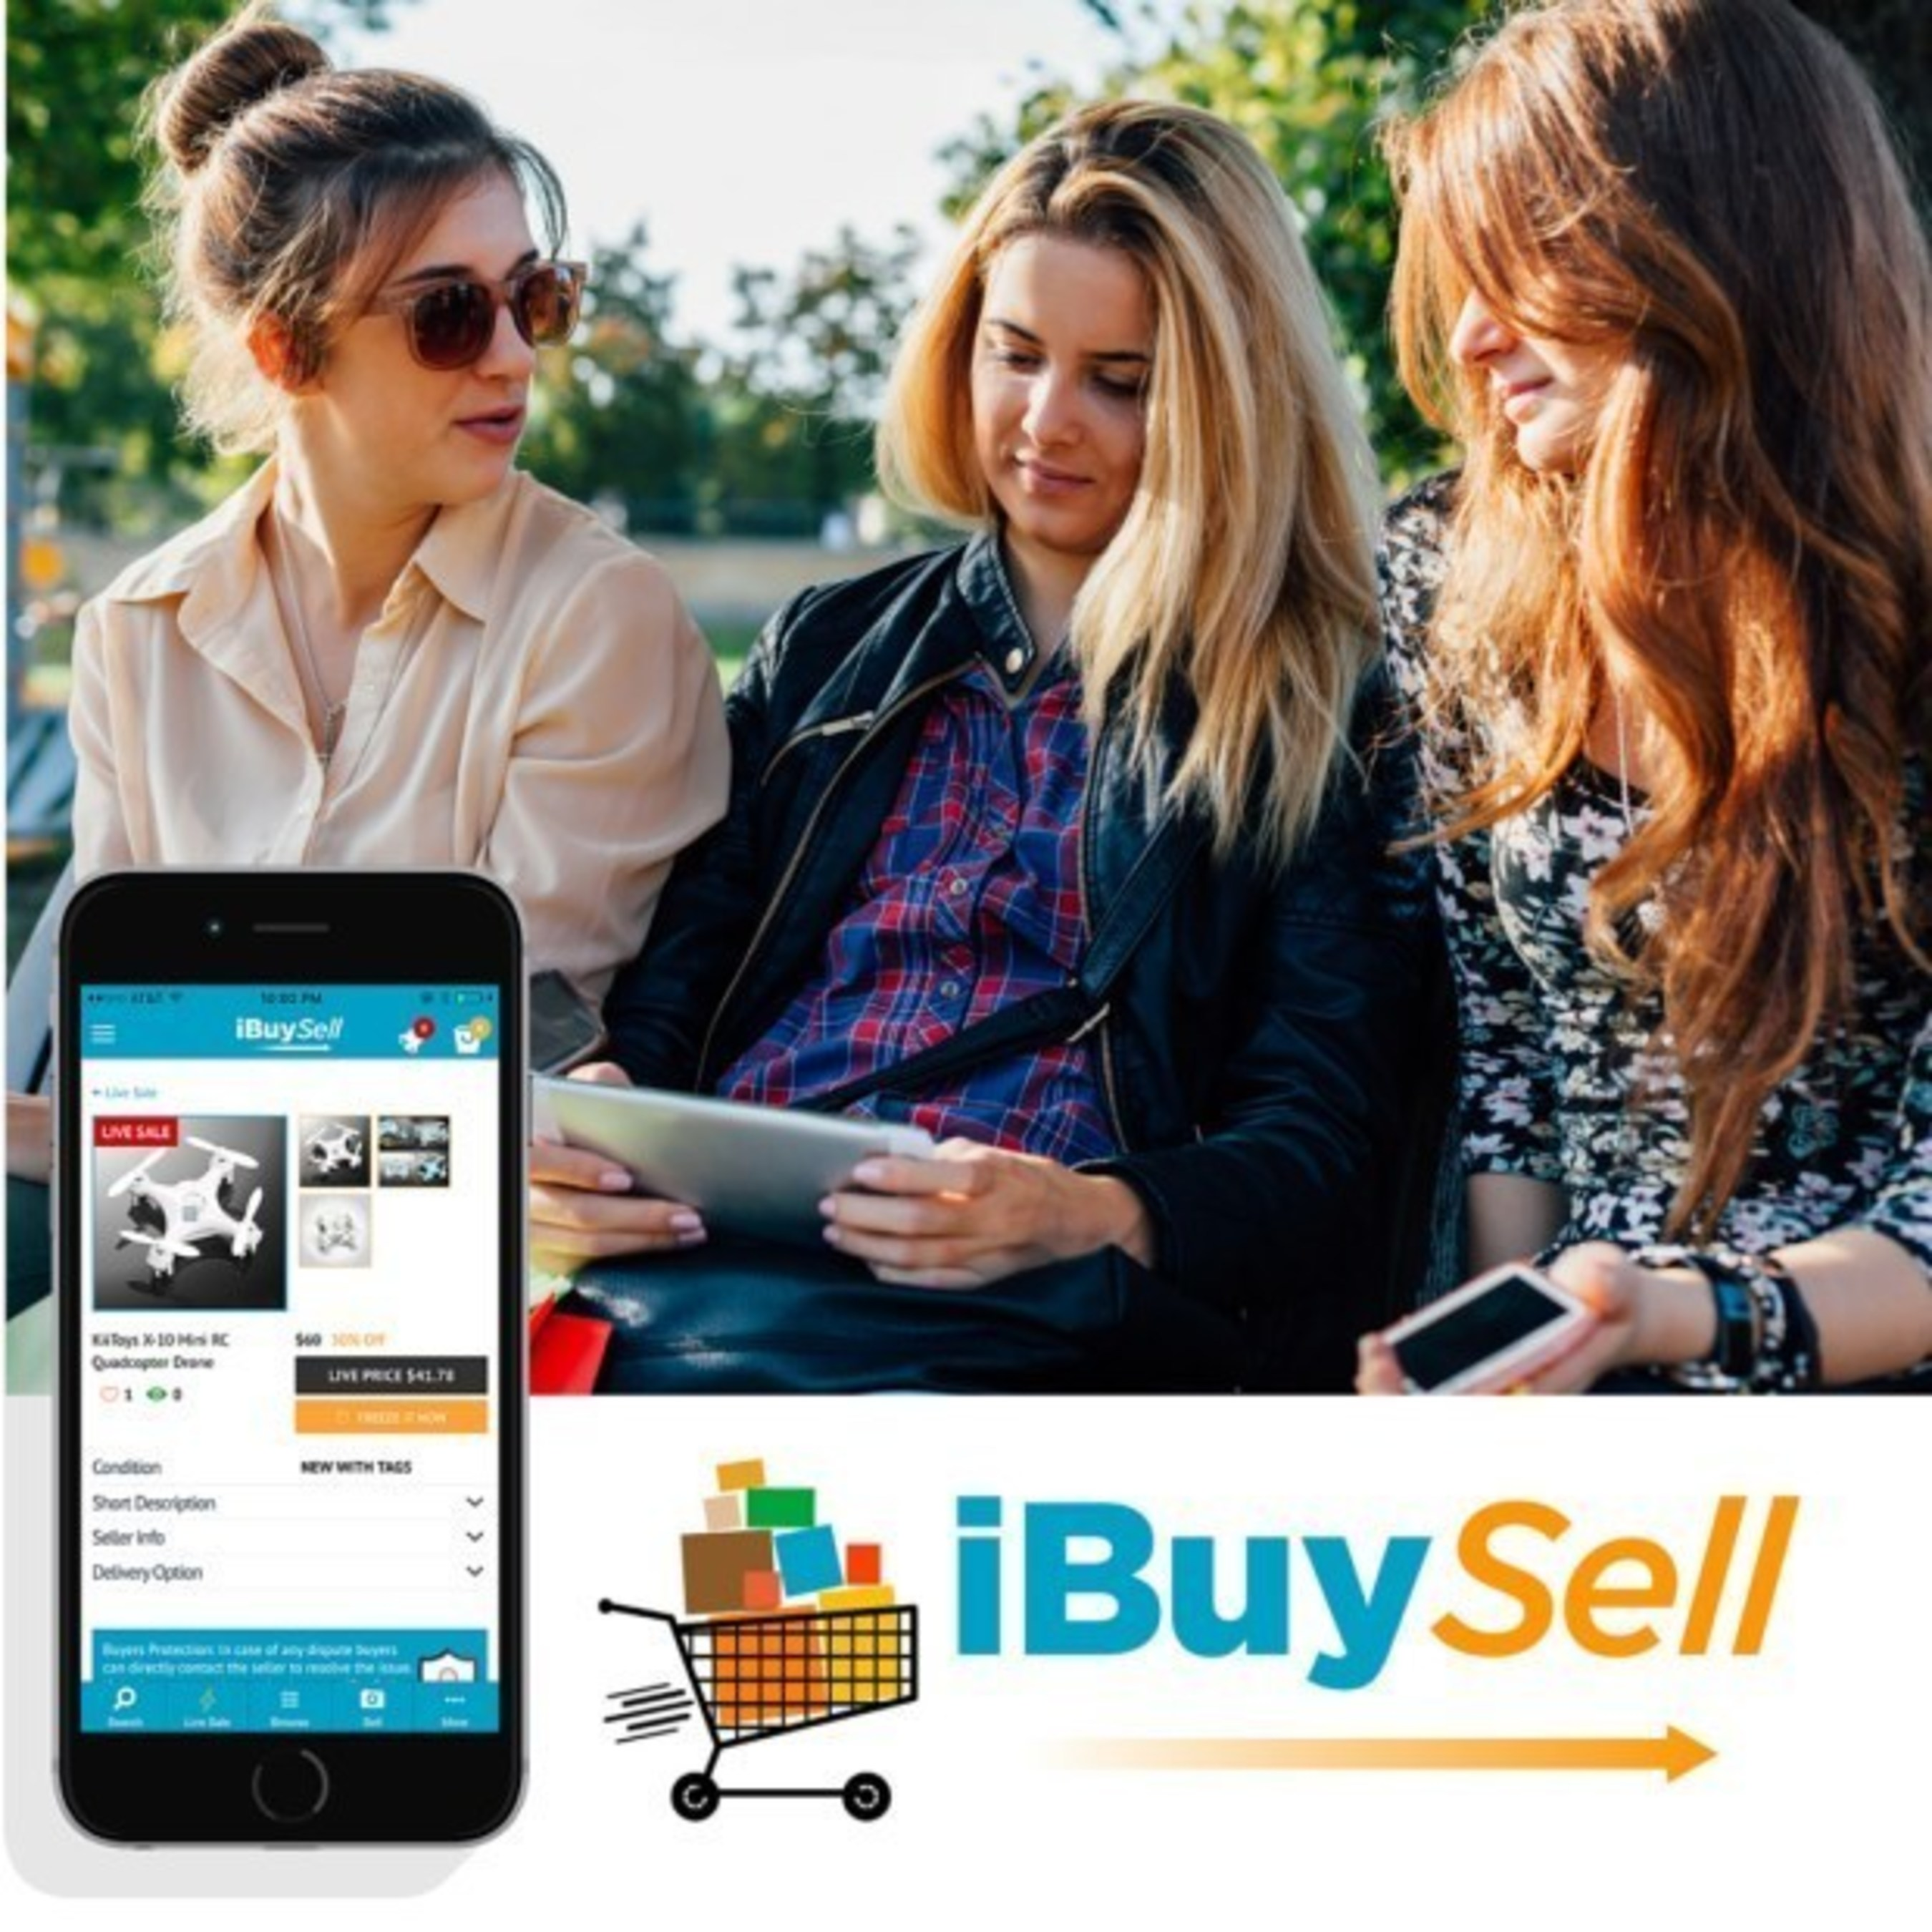 iBuySell - Real-Time Mobile and Online Marketplace That Turns Shopping to a Thrilling Competition